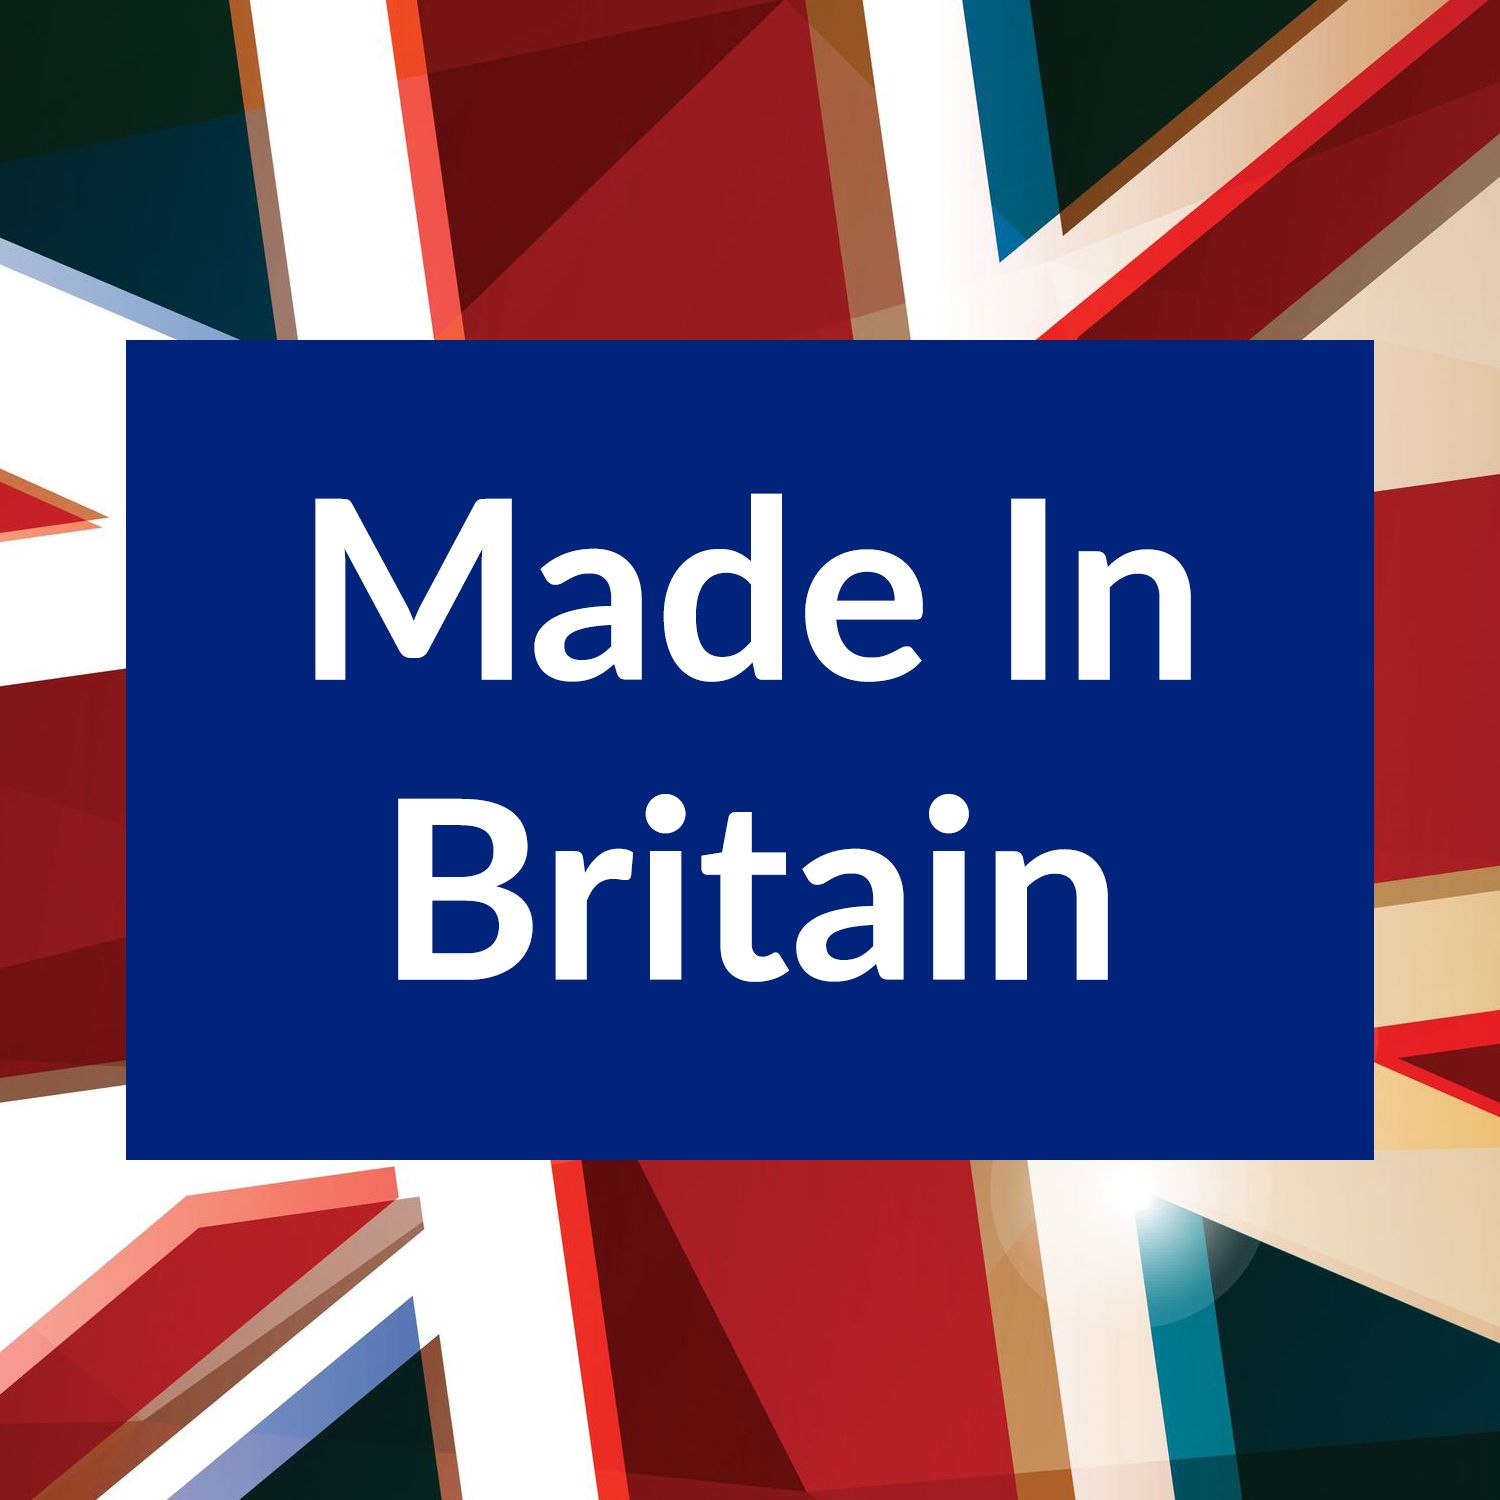 Made in Britain: We support British manufacturers